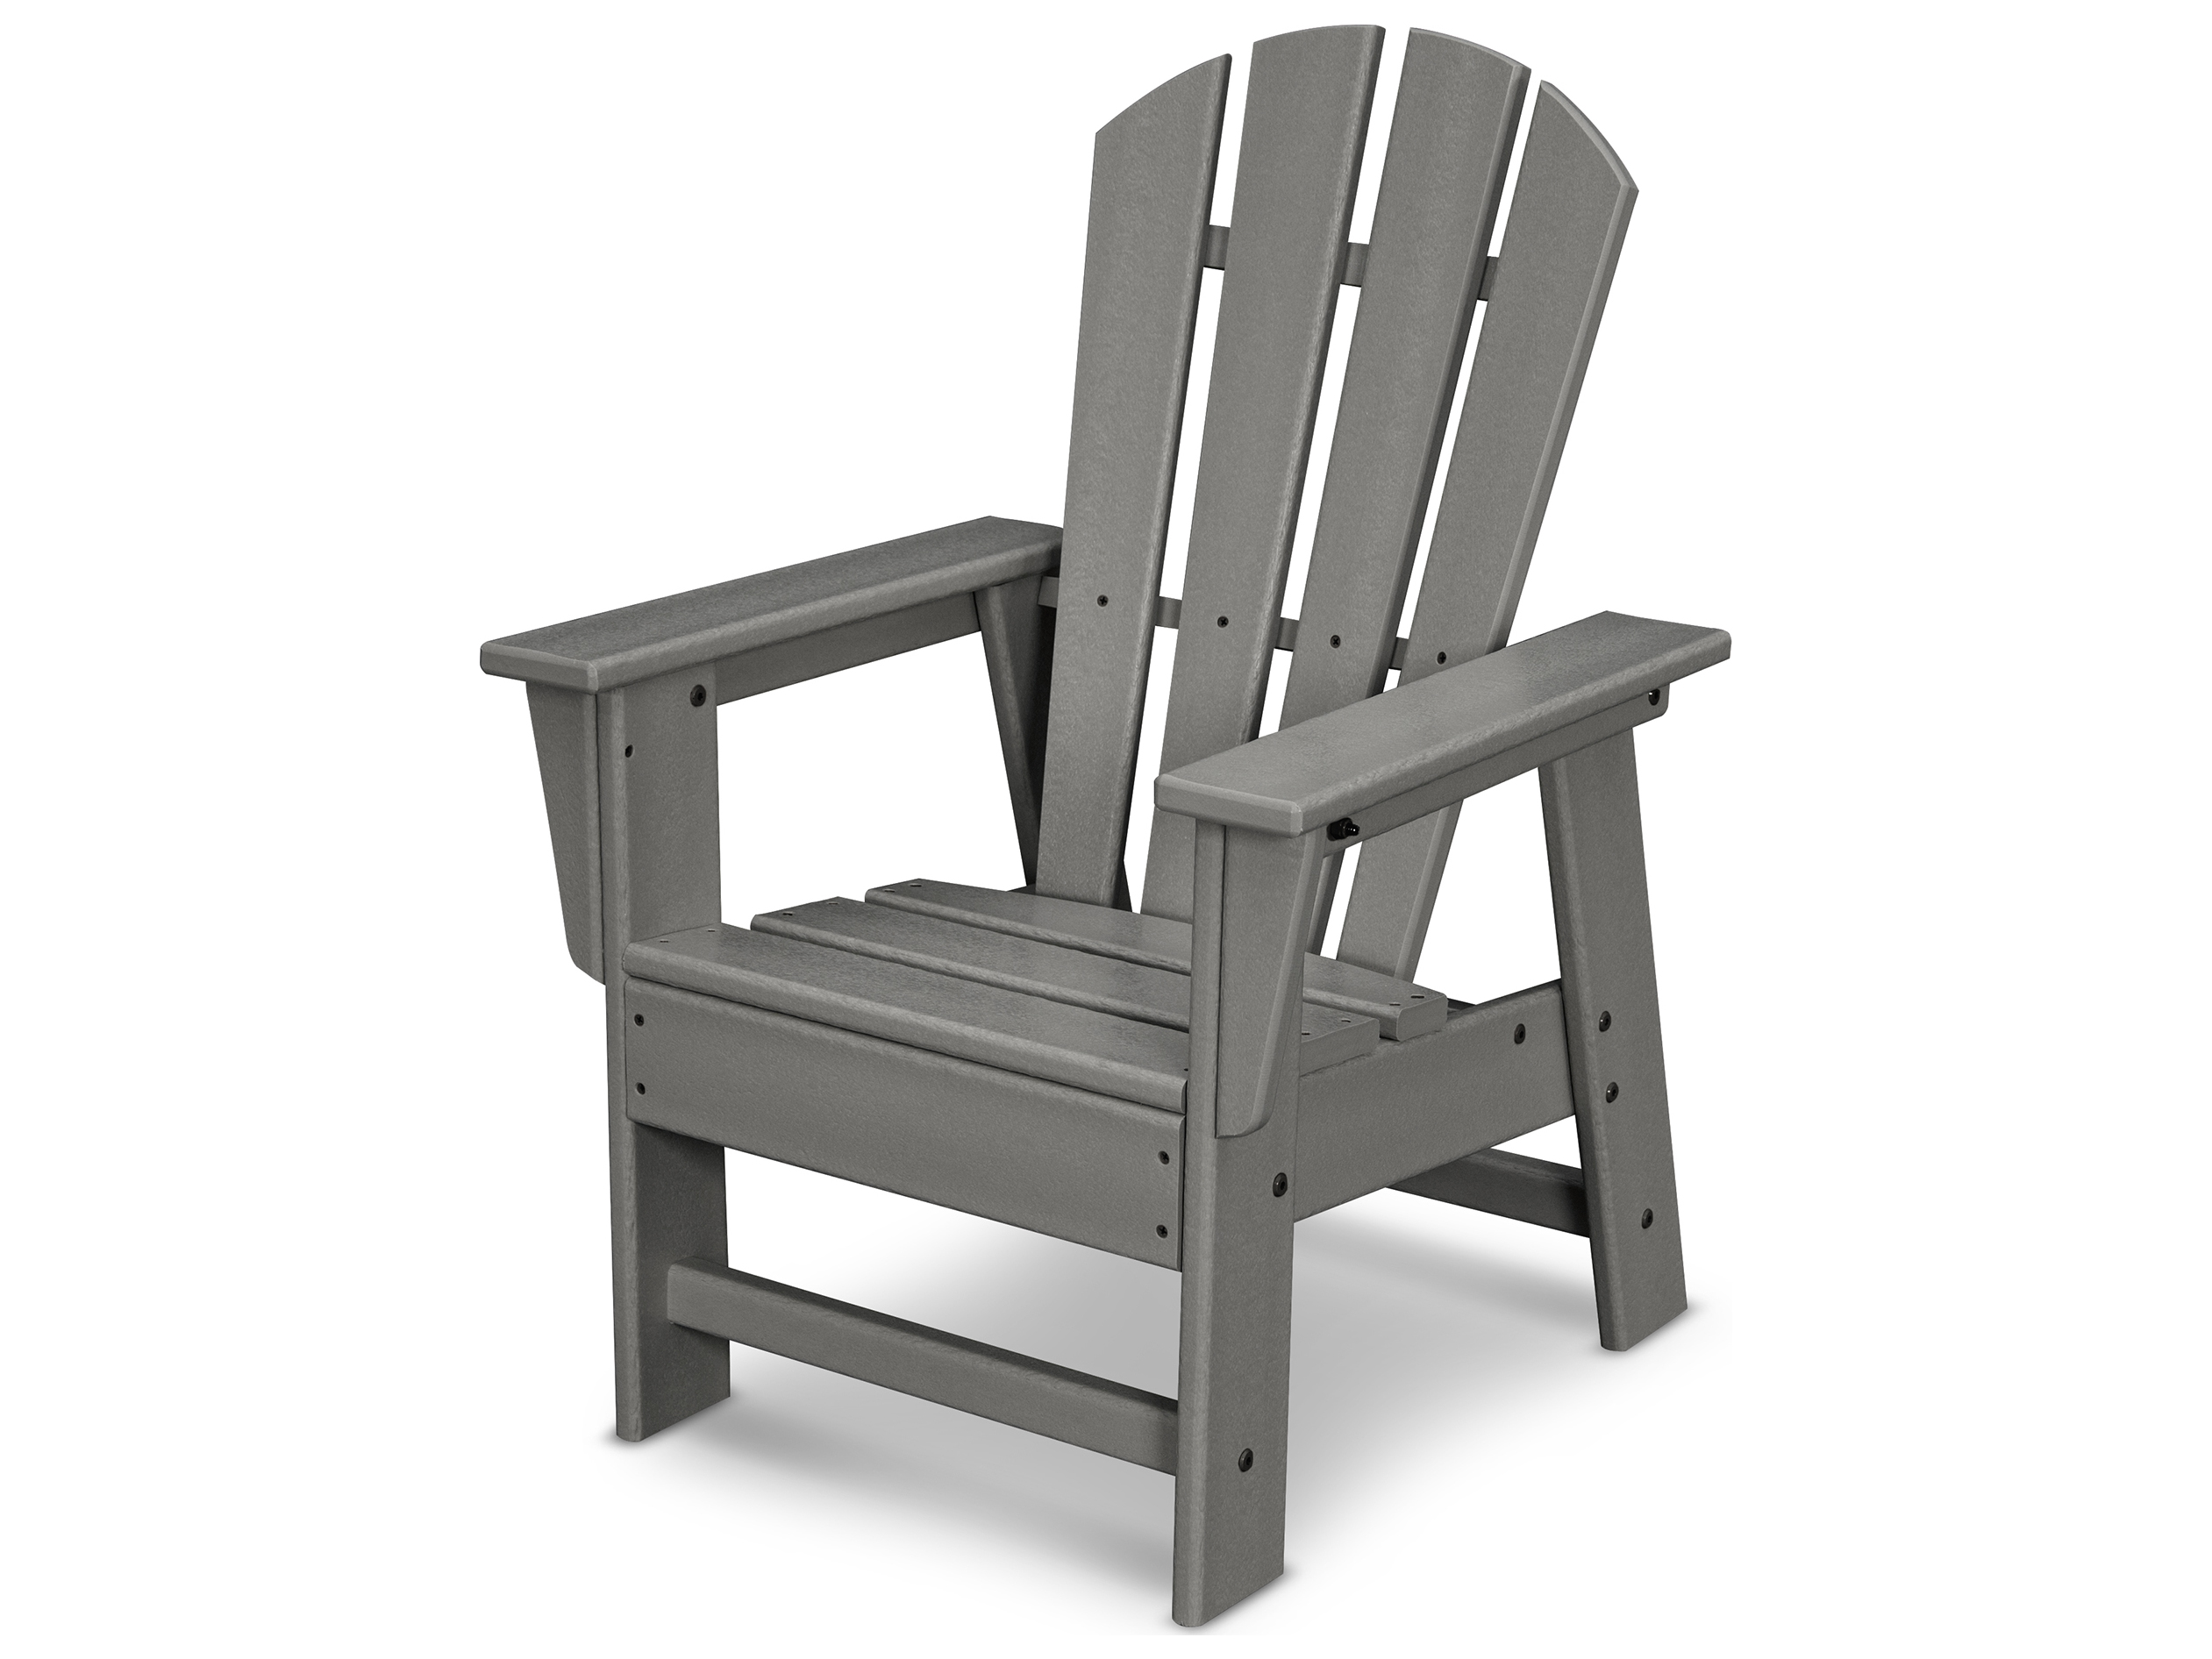 polywood south beach recycled plastic child size adirondack chair sbd12. Black Bedroom Furniture Sets. Home Design Ideas